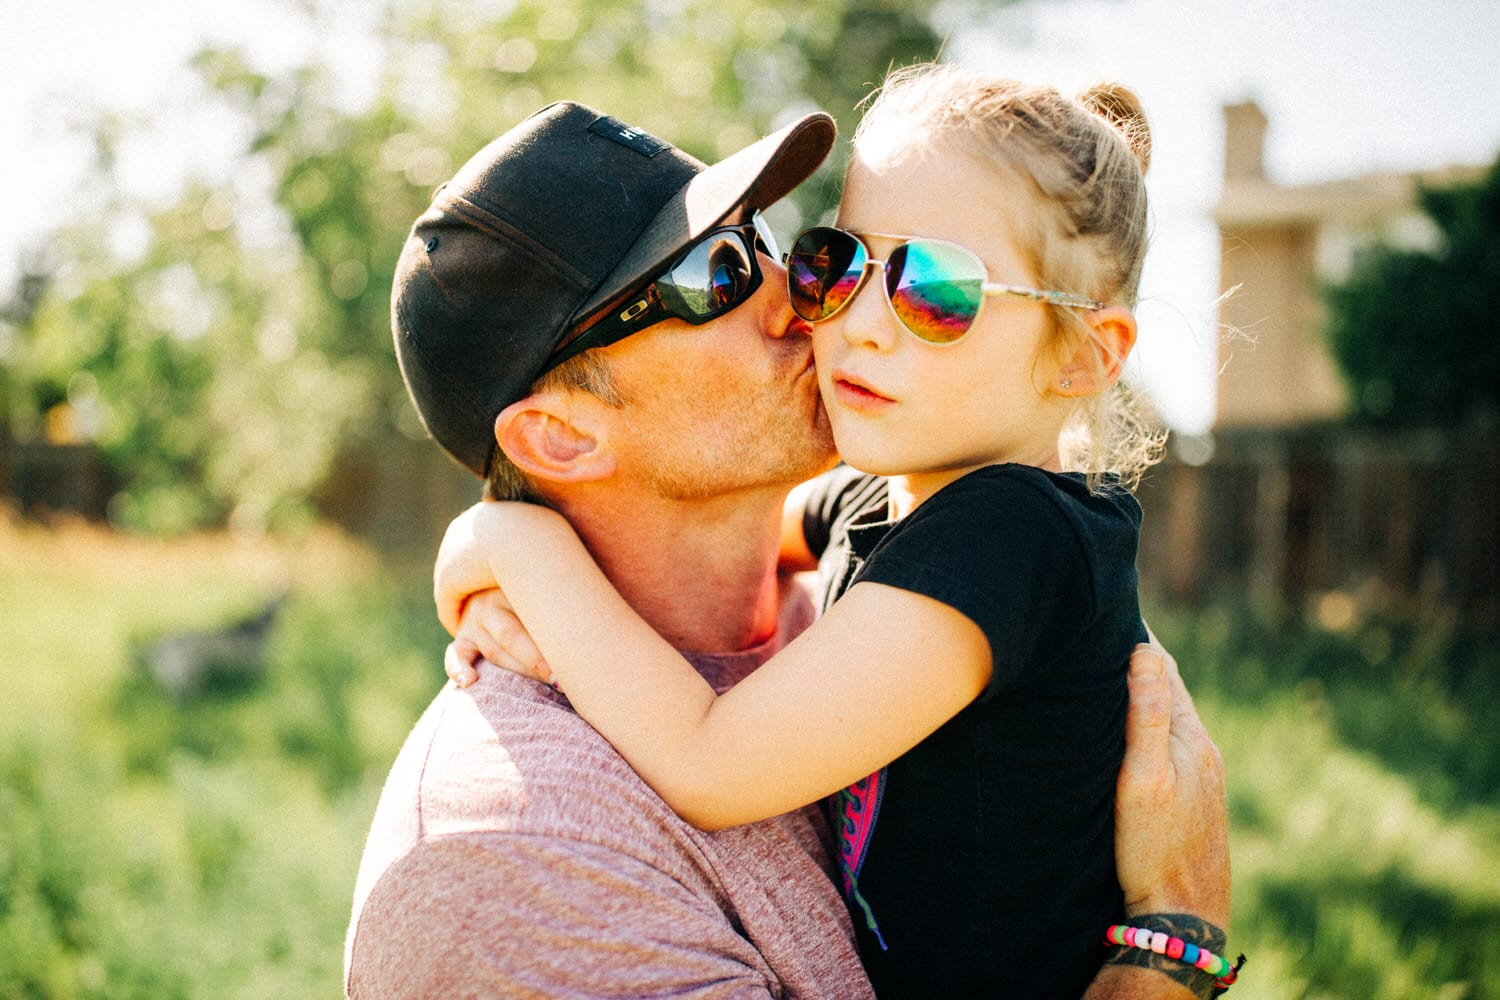 a dad hugging her daughter in a park late afternoon during their family portrait shoot